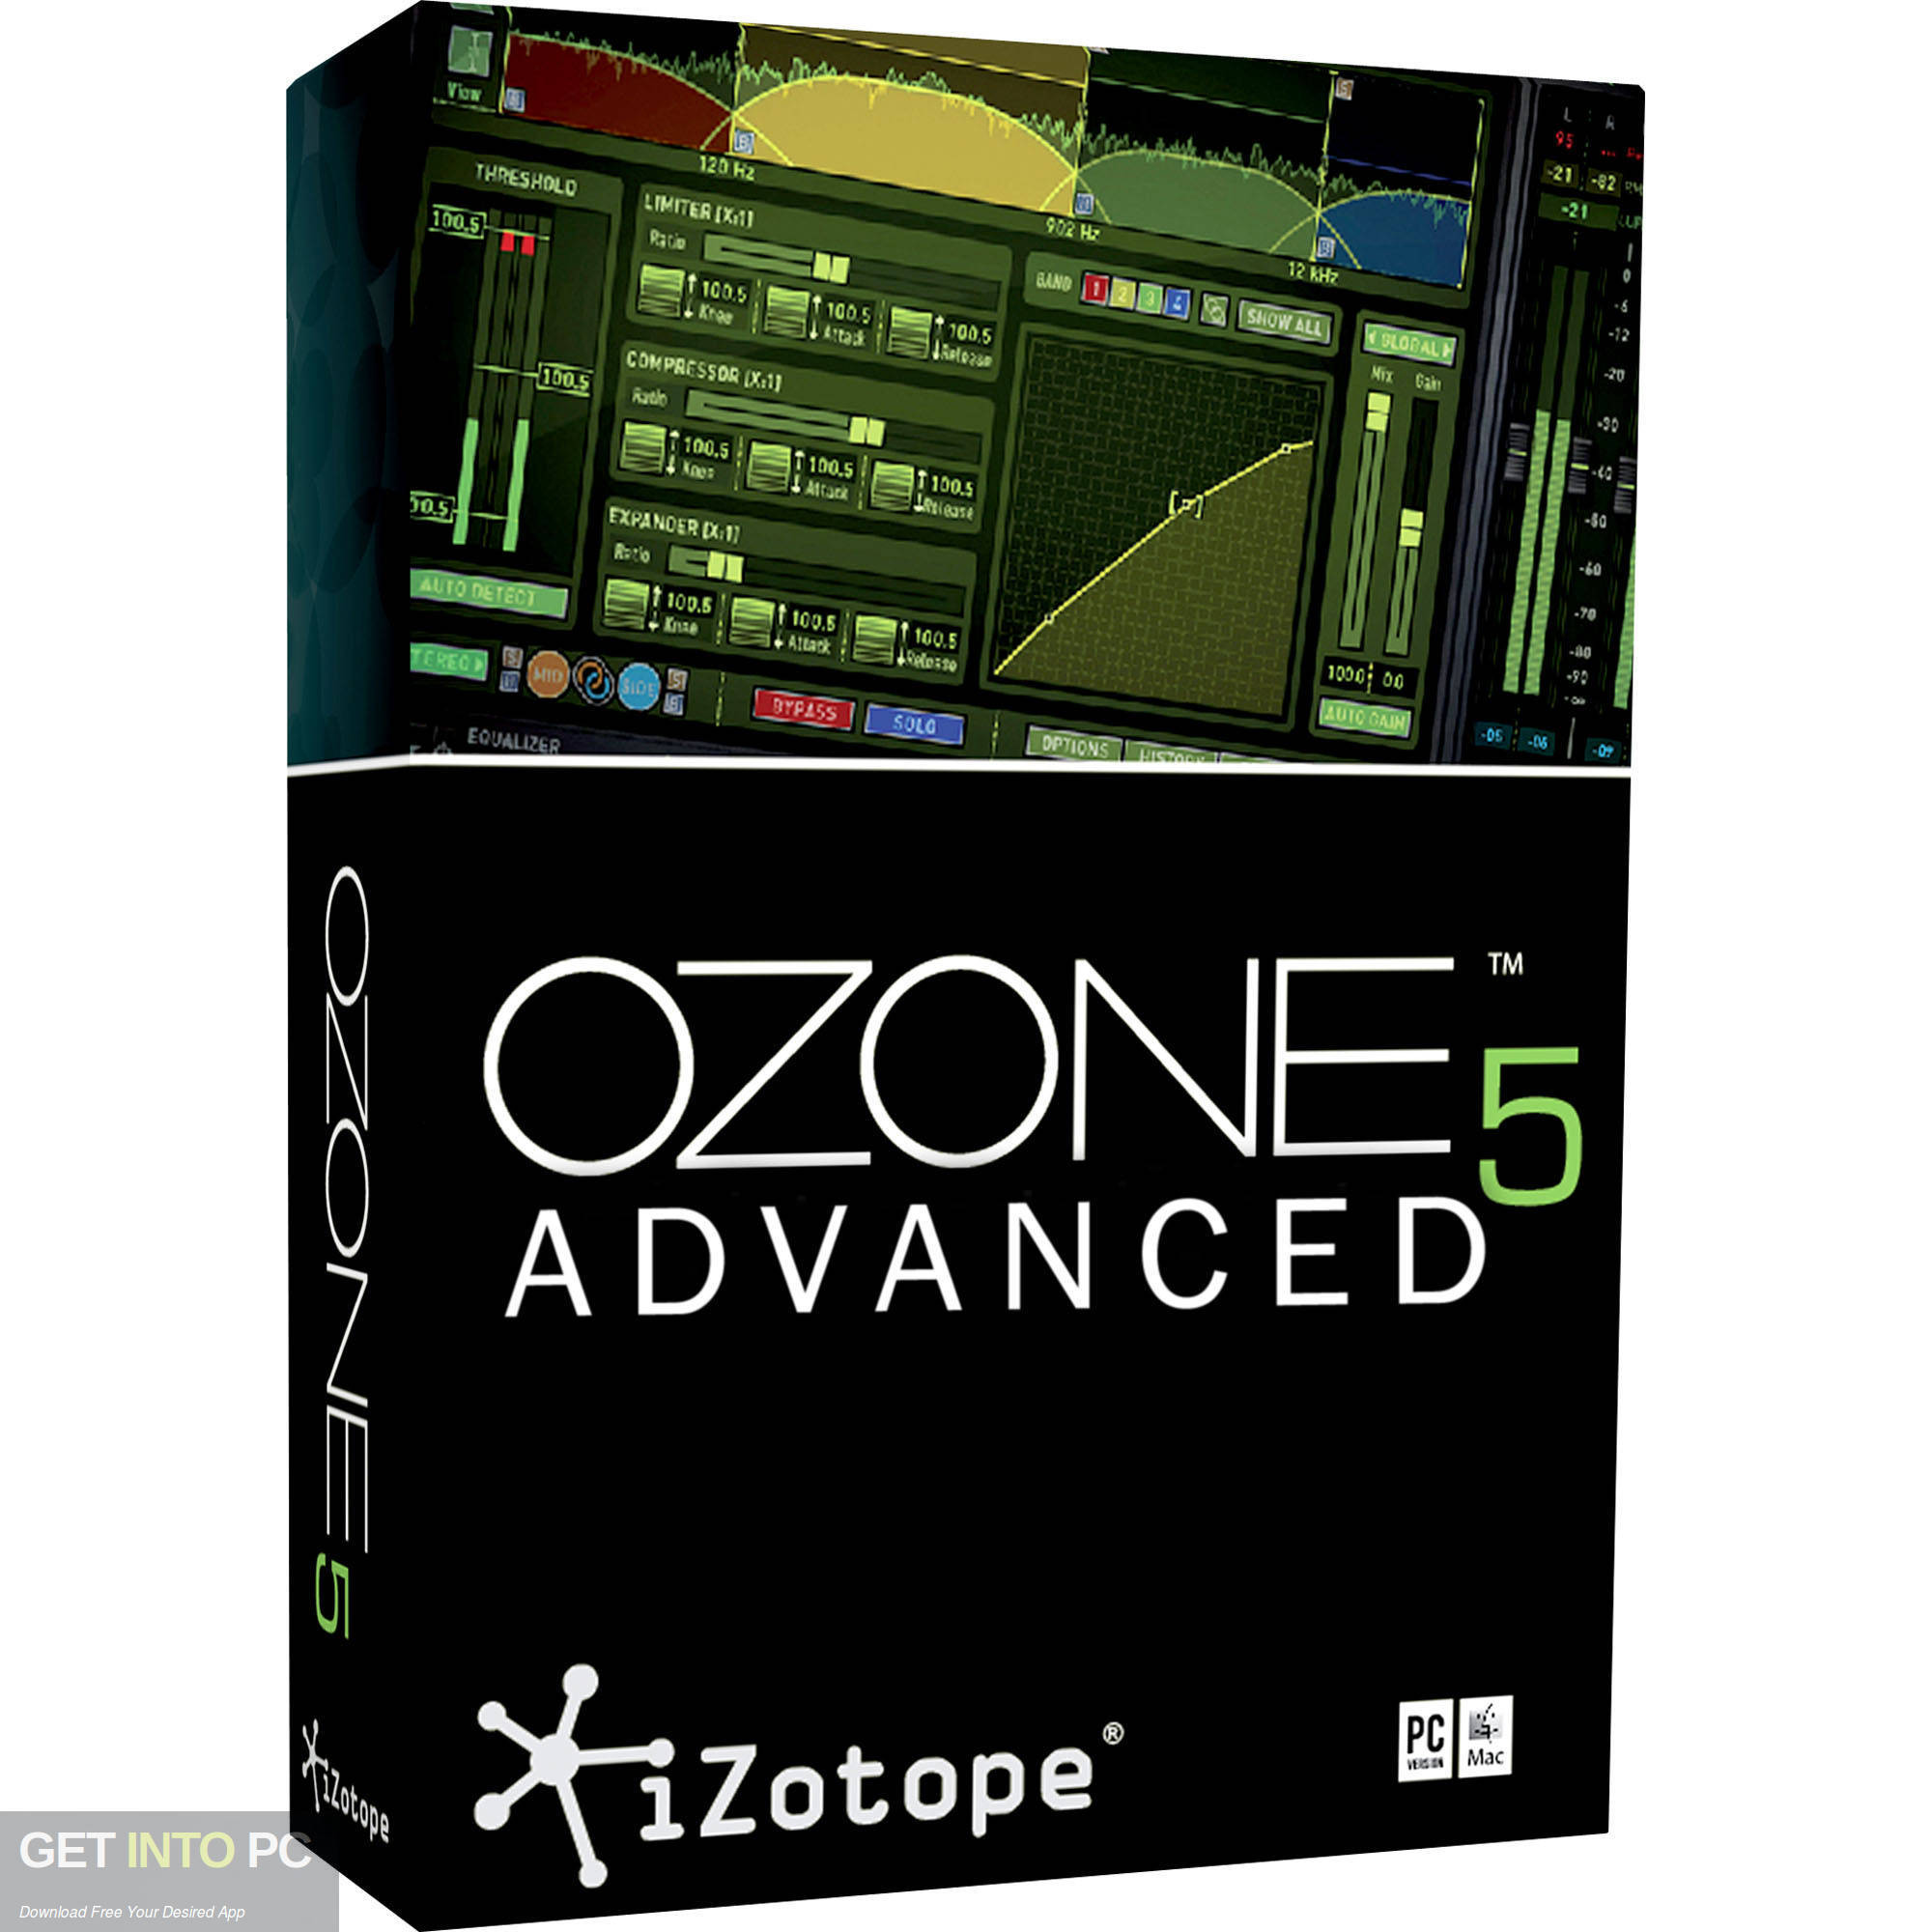 iZotope - Ozone 5 Advanced VST Free Download